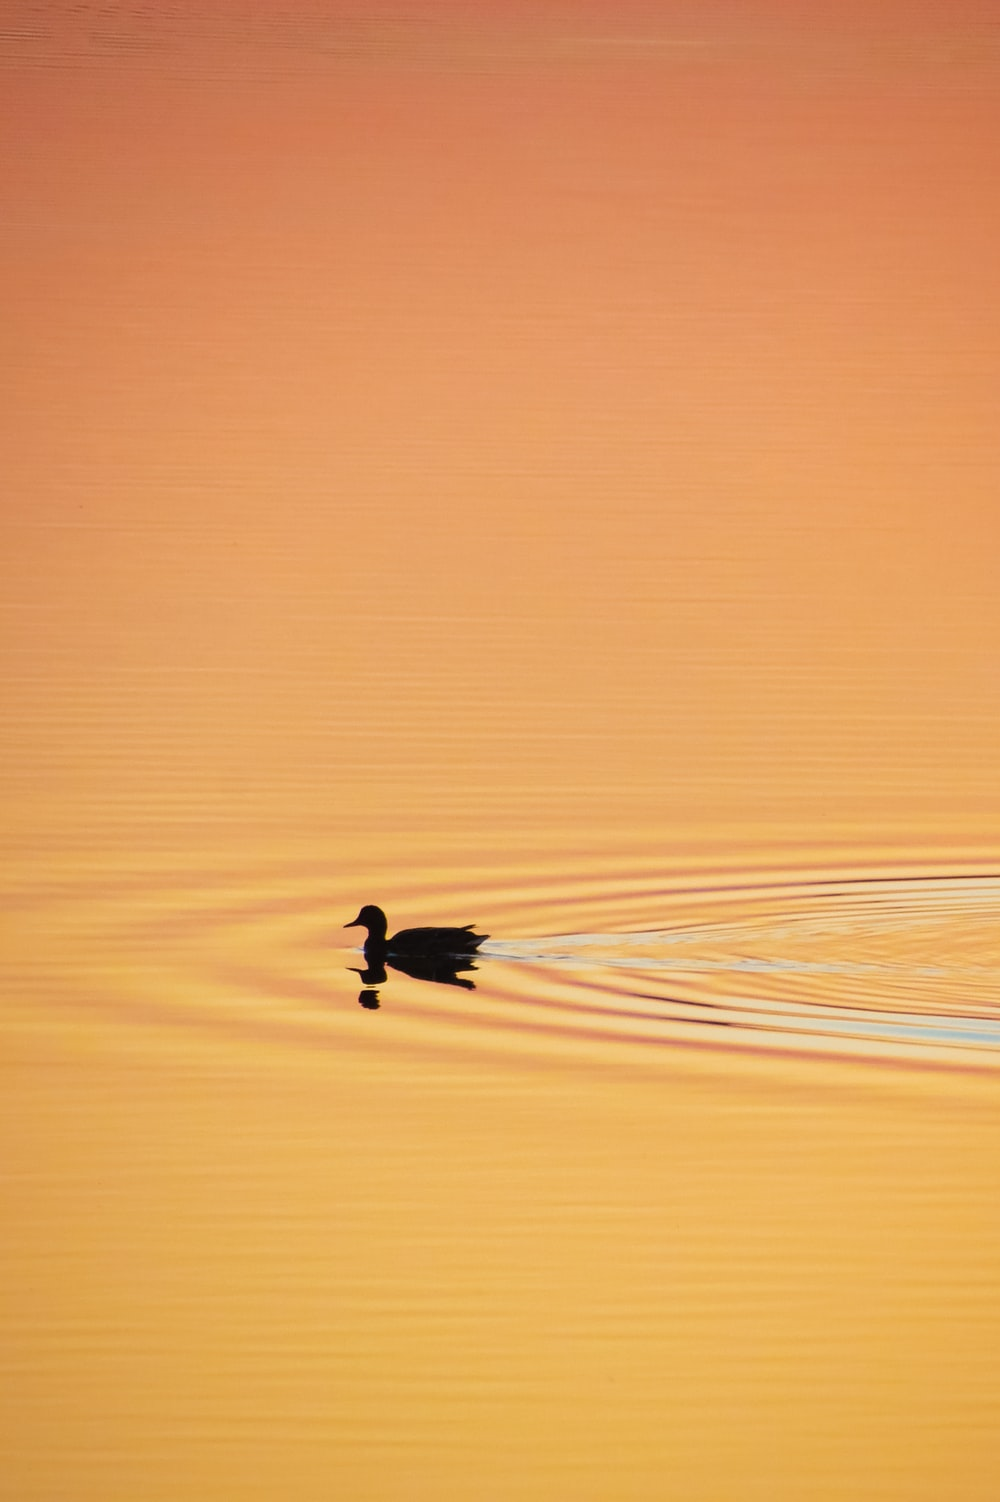 silhouette of duck on water during sunset